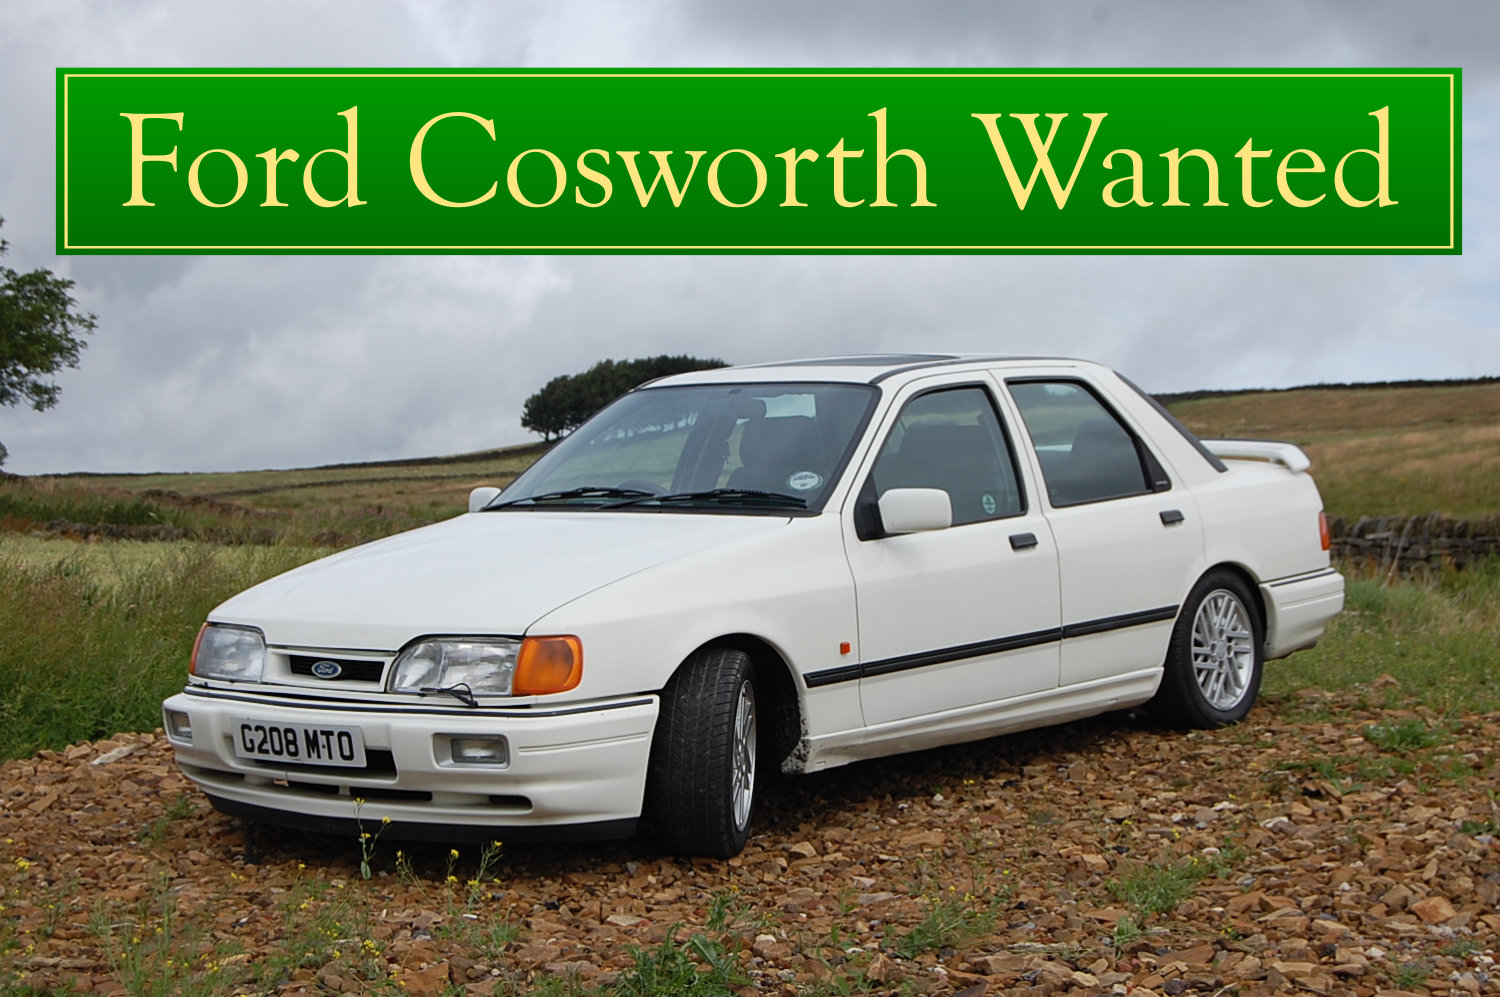 1985 FORD FIESTA XR2 WANTED, CLASSIC CARS WANTED,QUICK PAYMENT Wanted (picture 5 of 6)